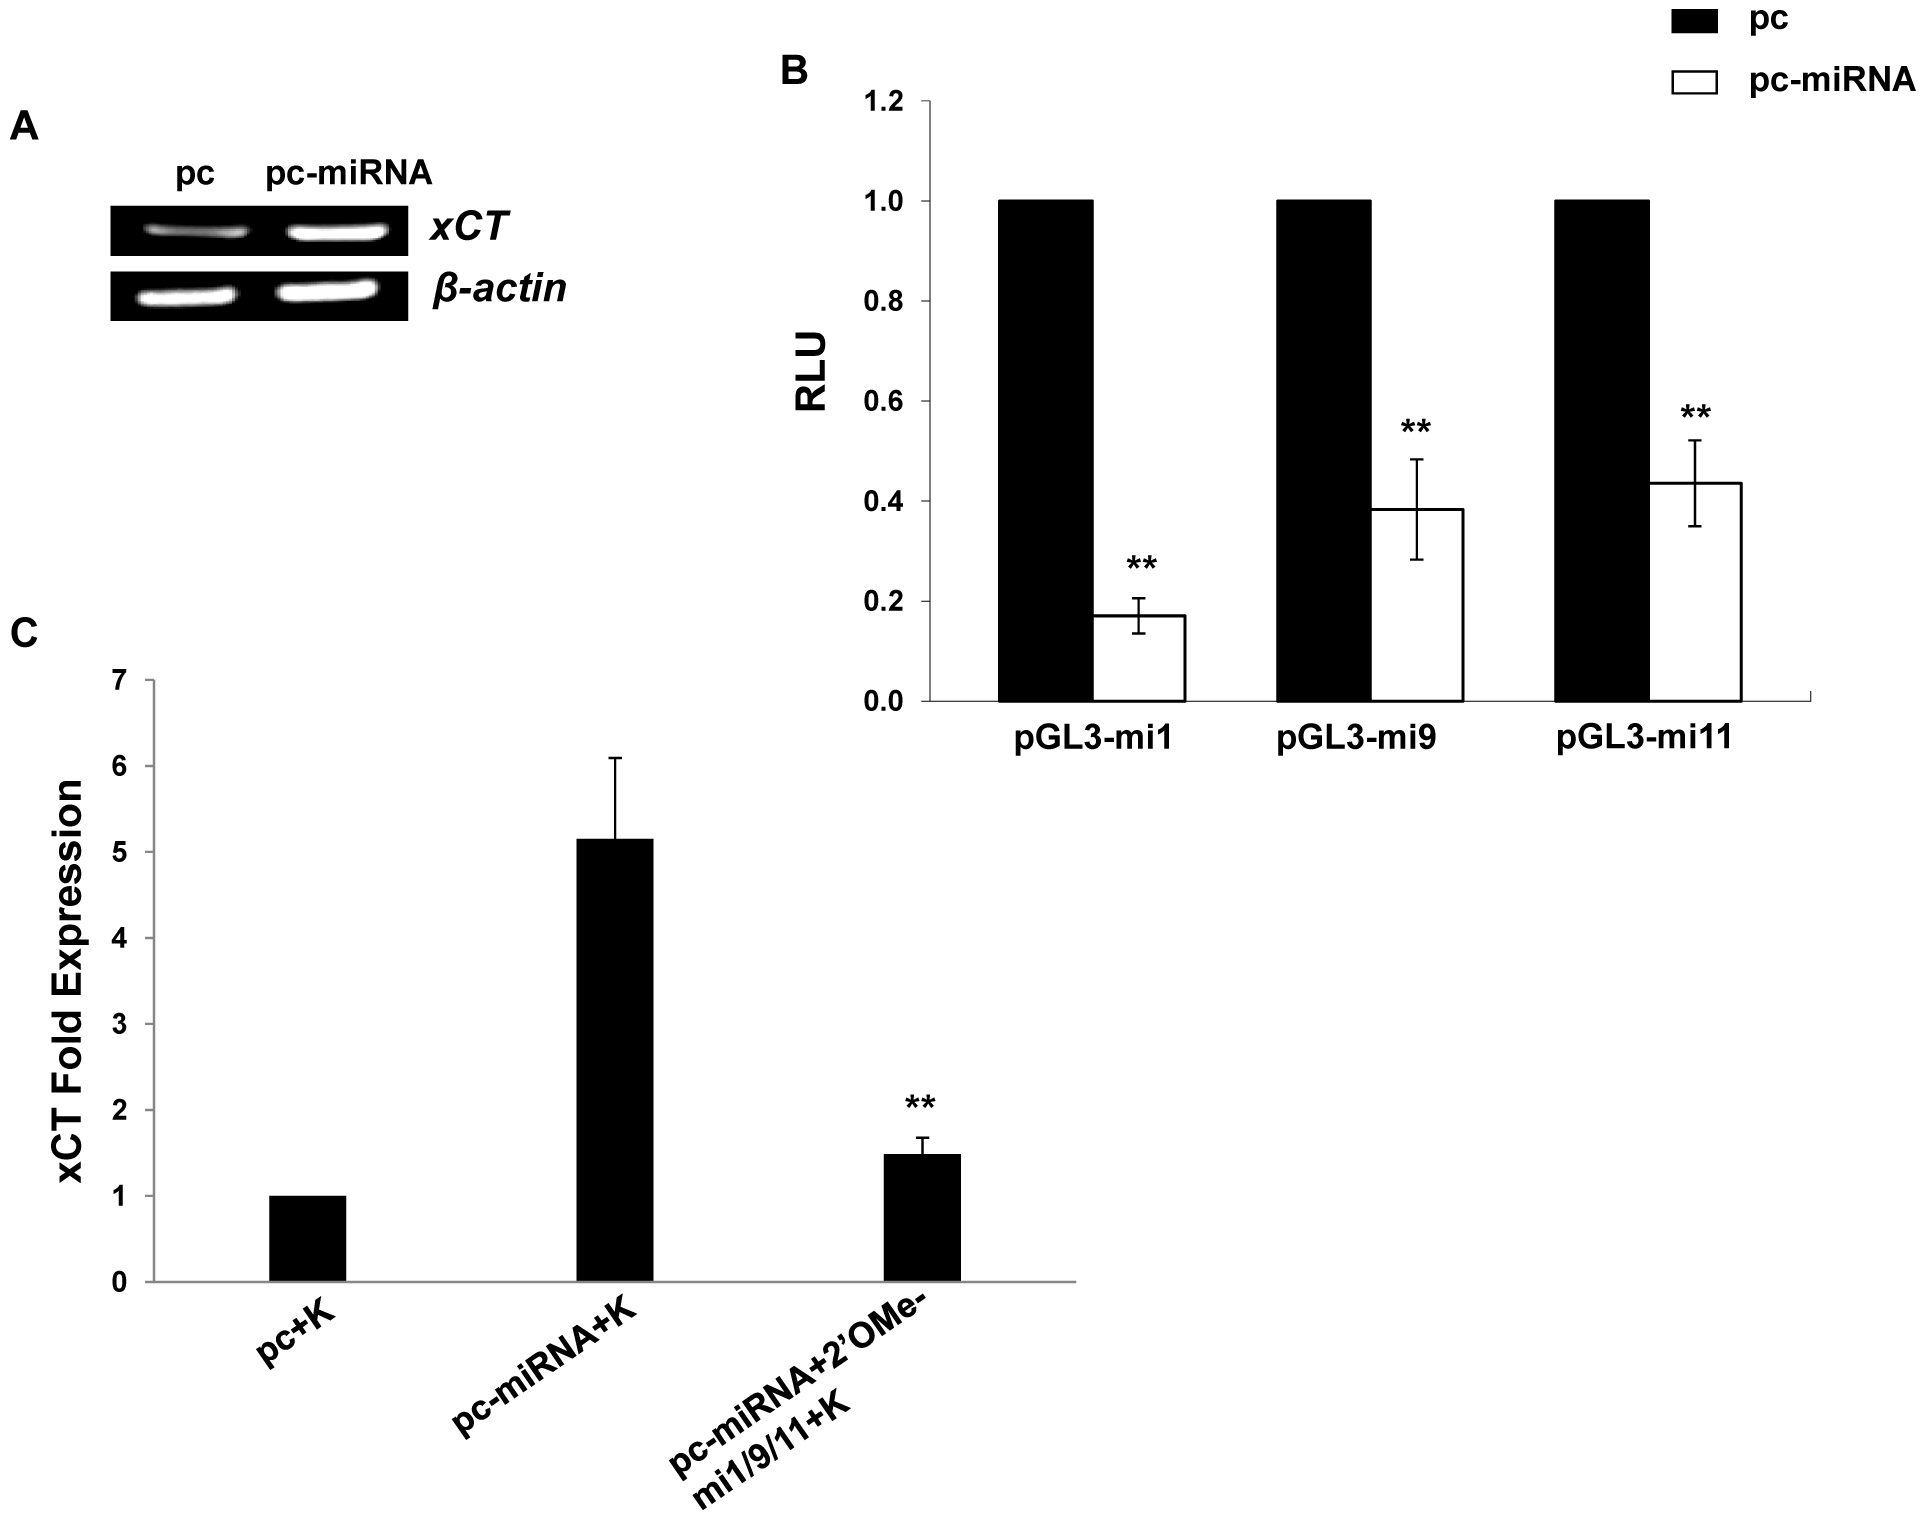 KSHV miRNAs upregulate xCT expression by macrophages.